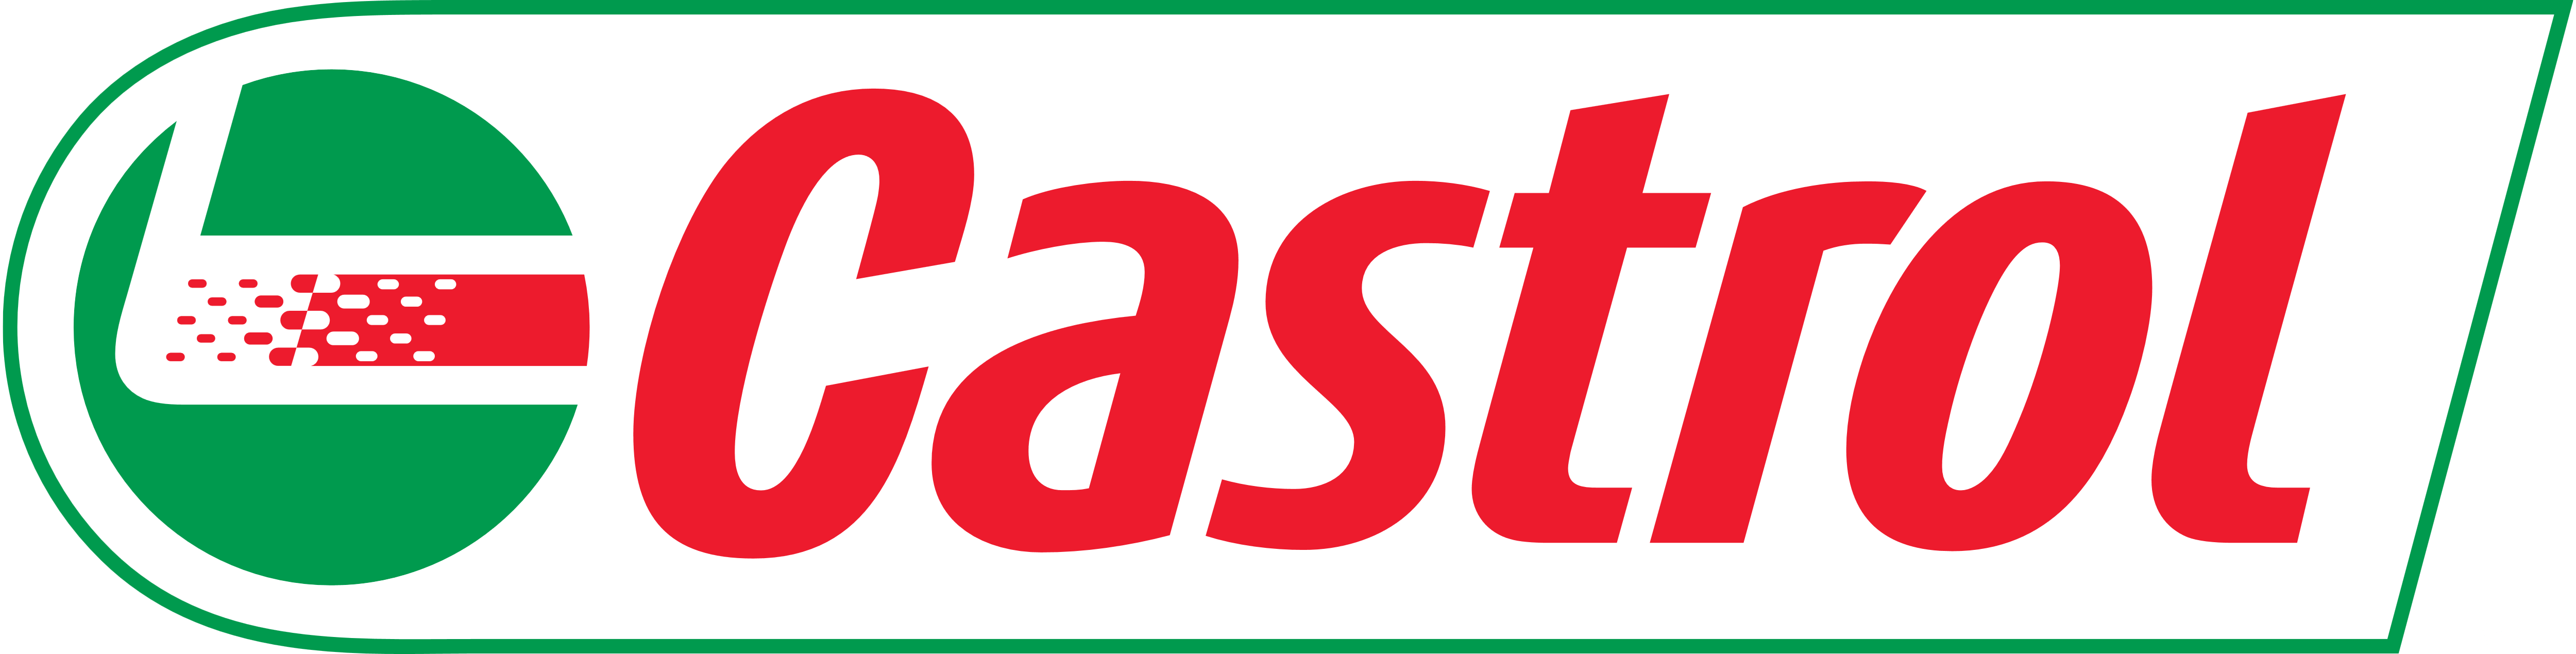 Castrol partnership